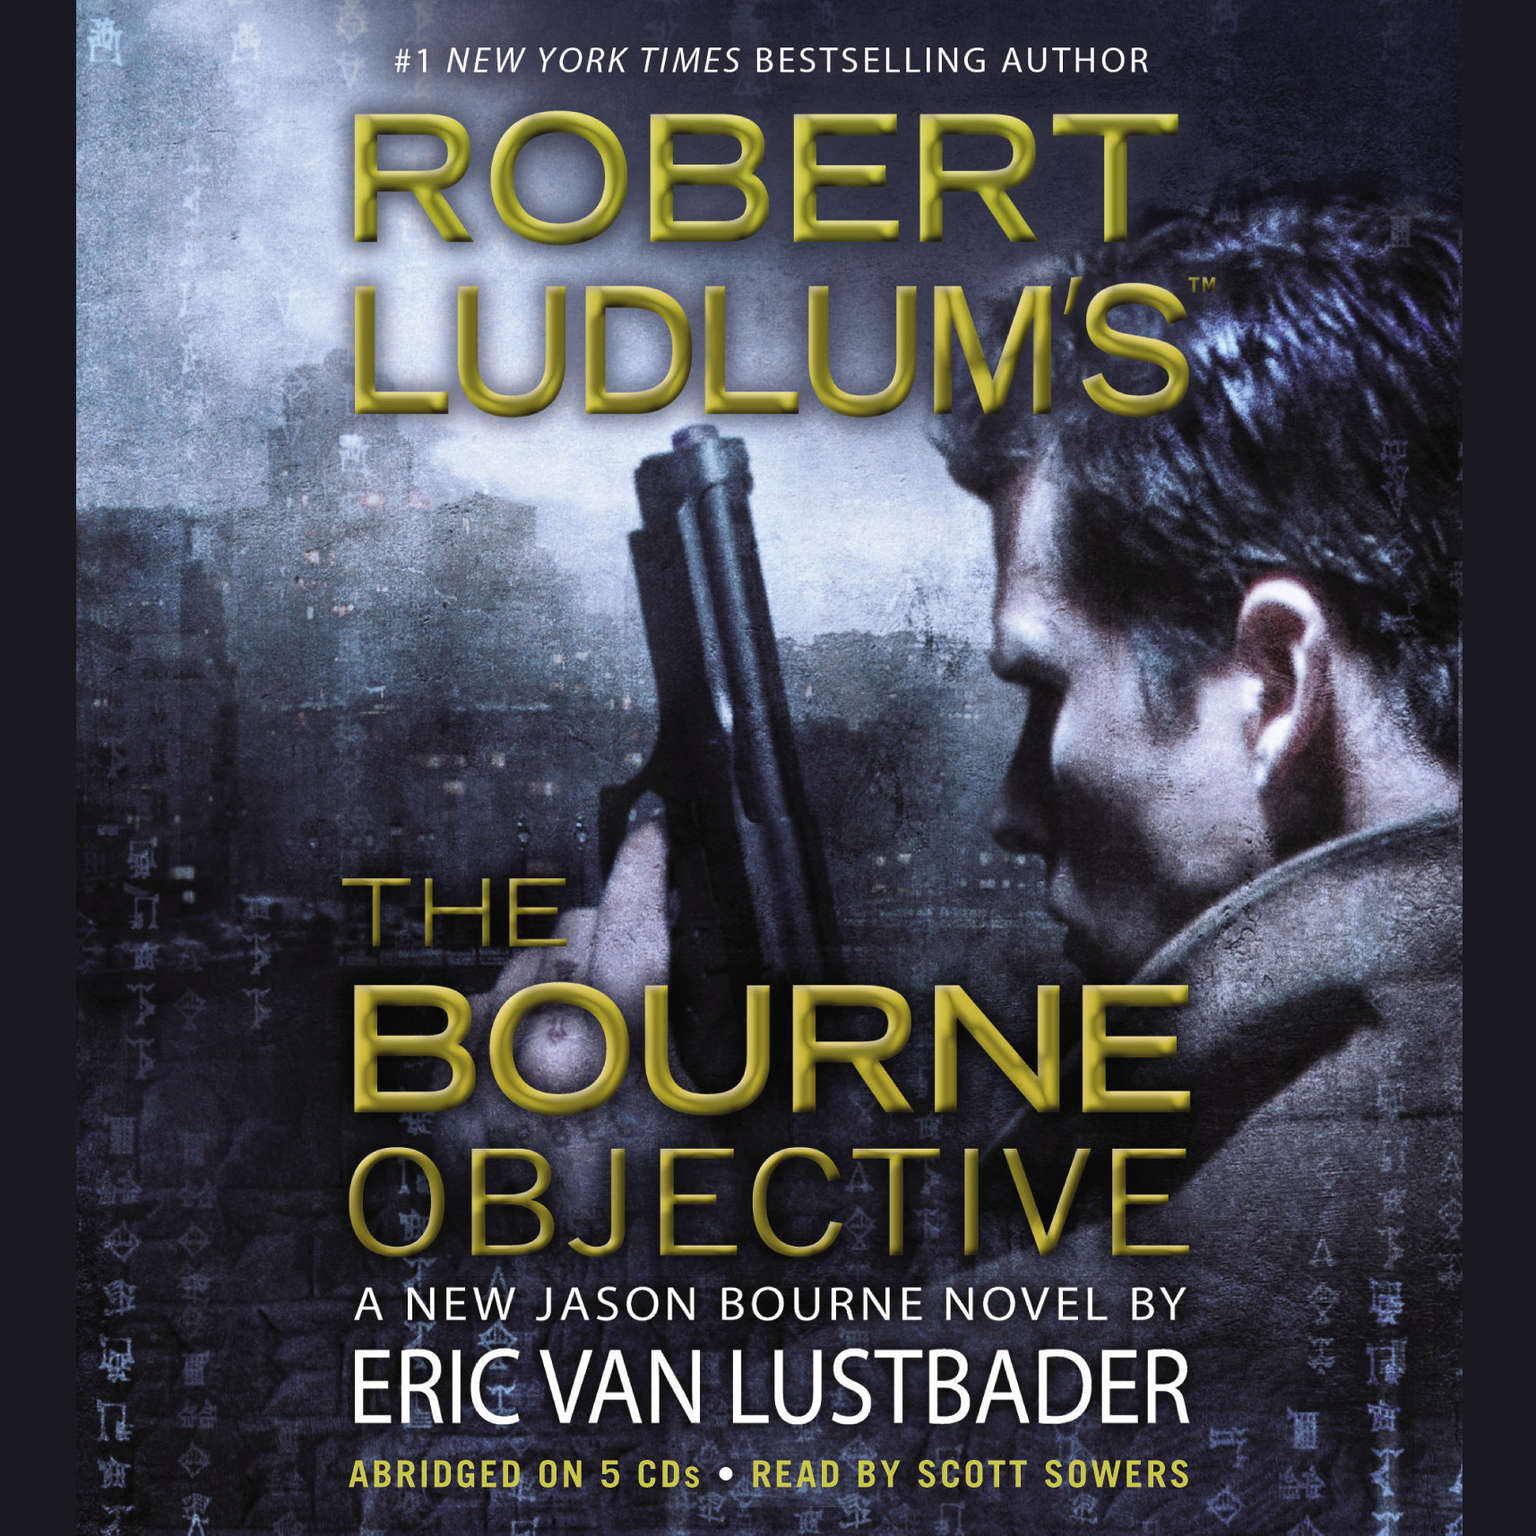 Robert Ludlum's The Bourne Objective (Abridged) Audiobook, by Eric Van Lustbader